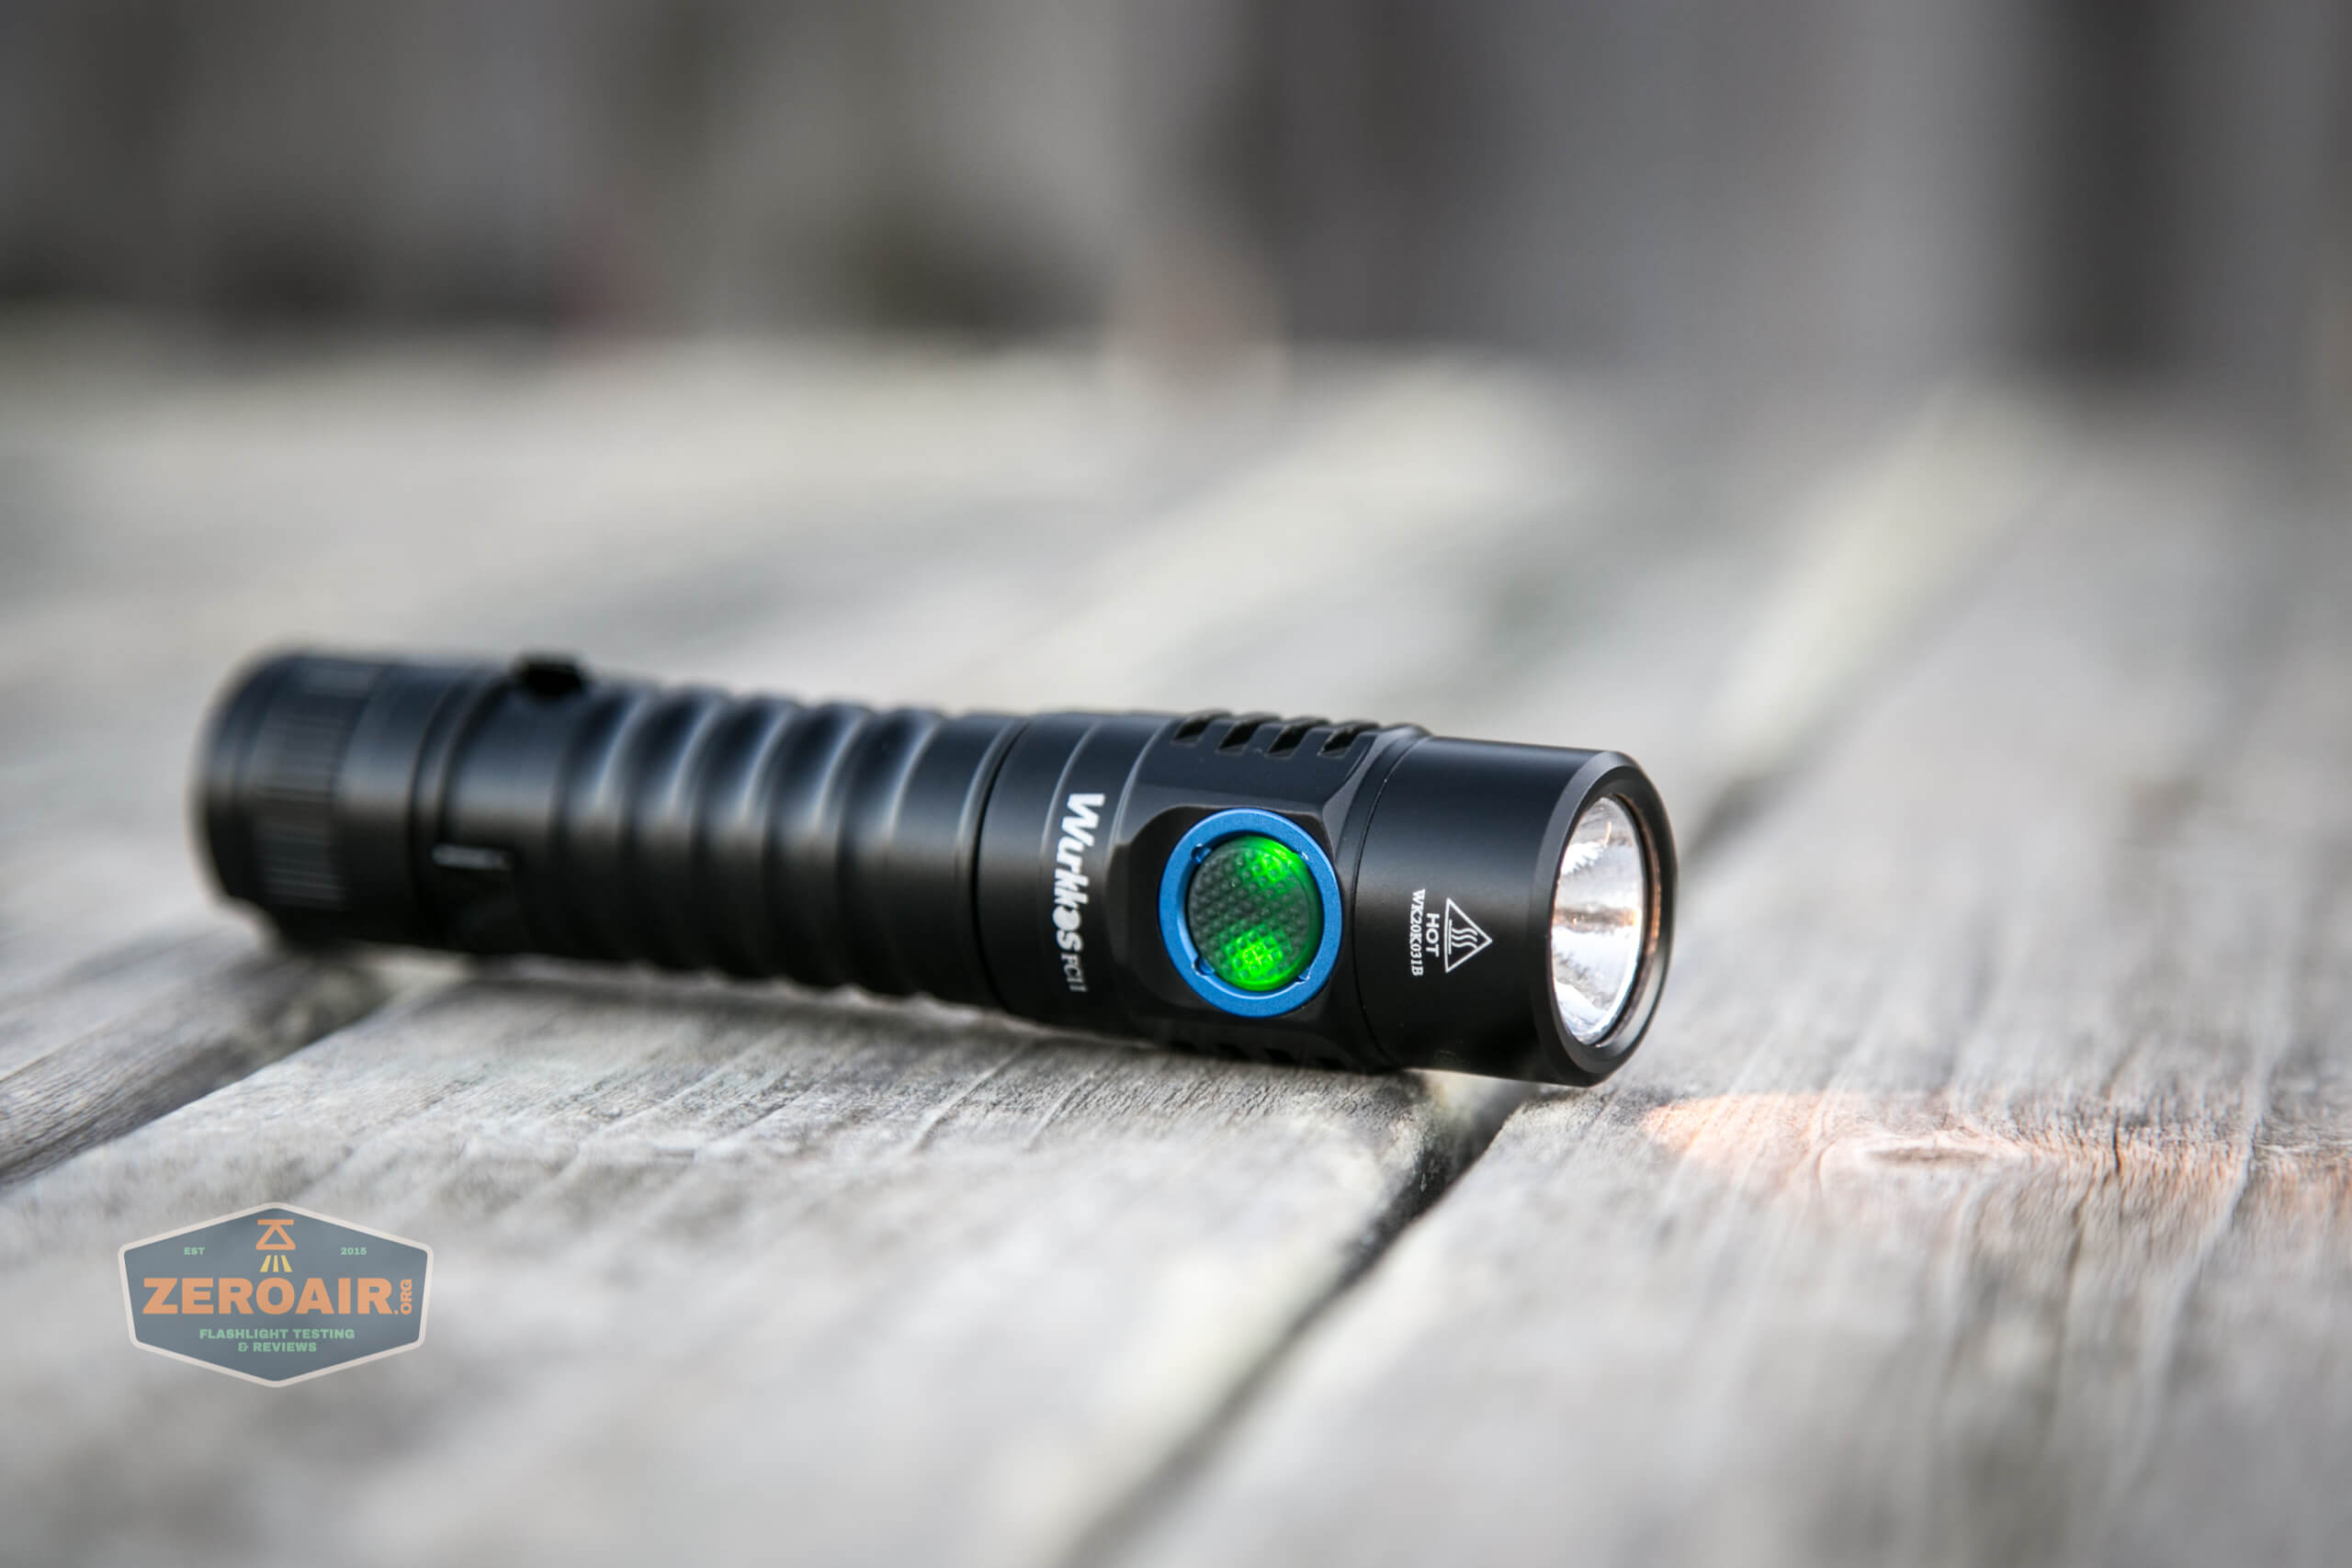 wurkkos fc11 flashlight switch indicating in green